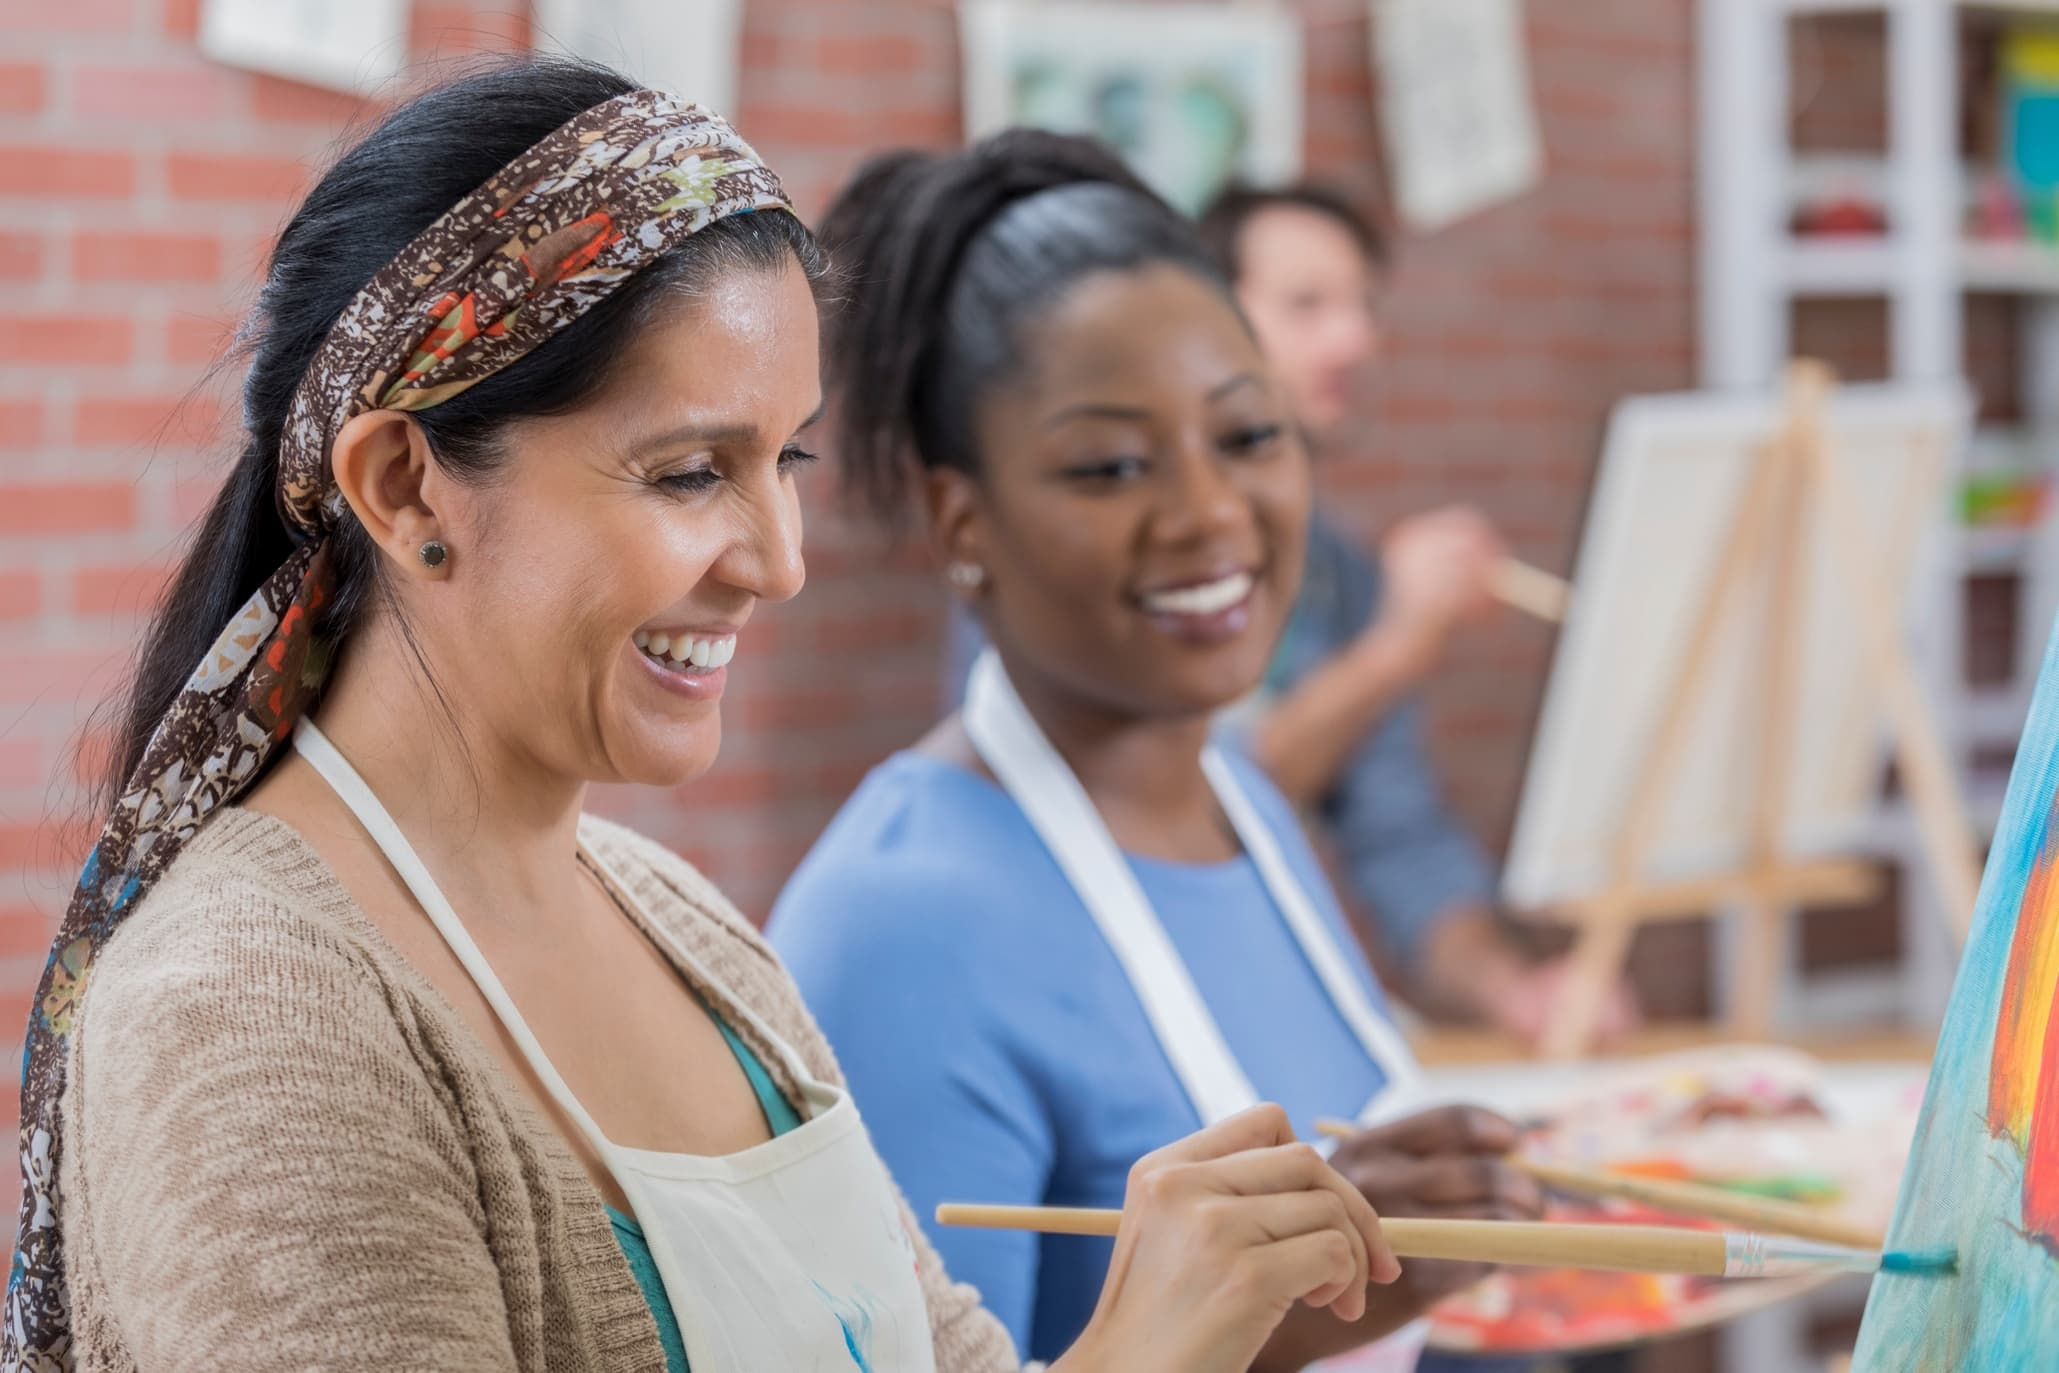 Weekend activities that don't involve drinking group of friends painting